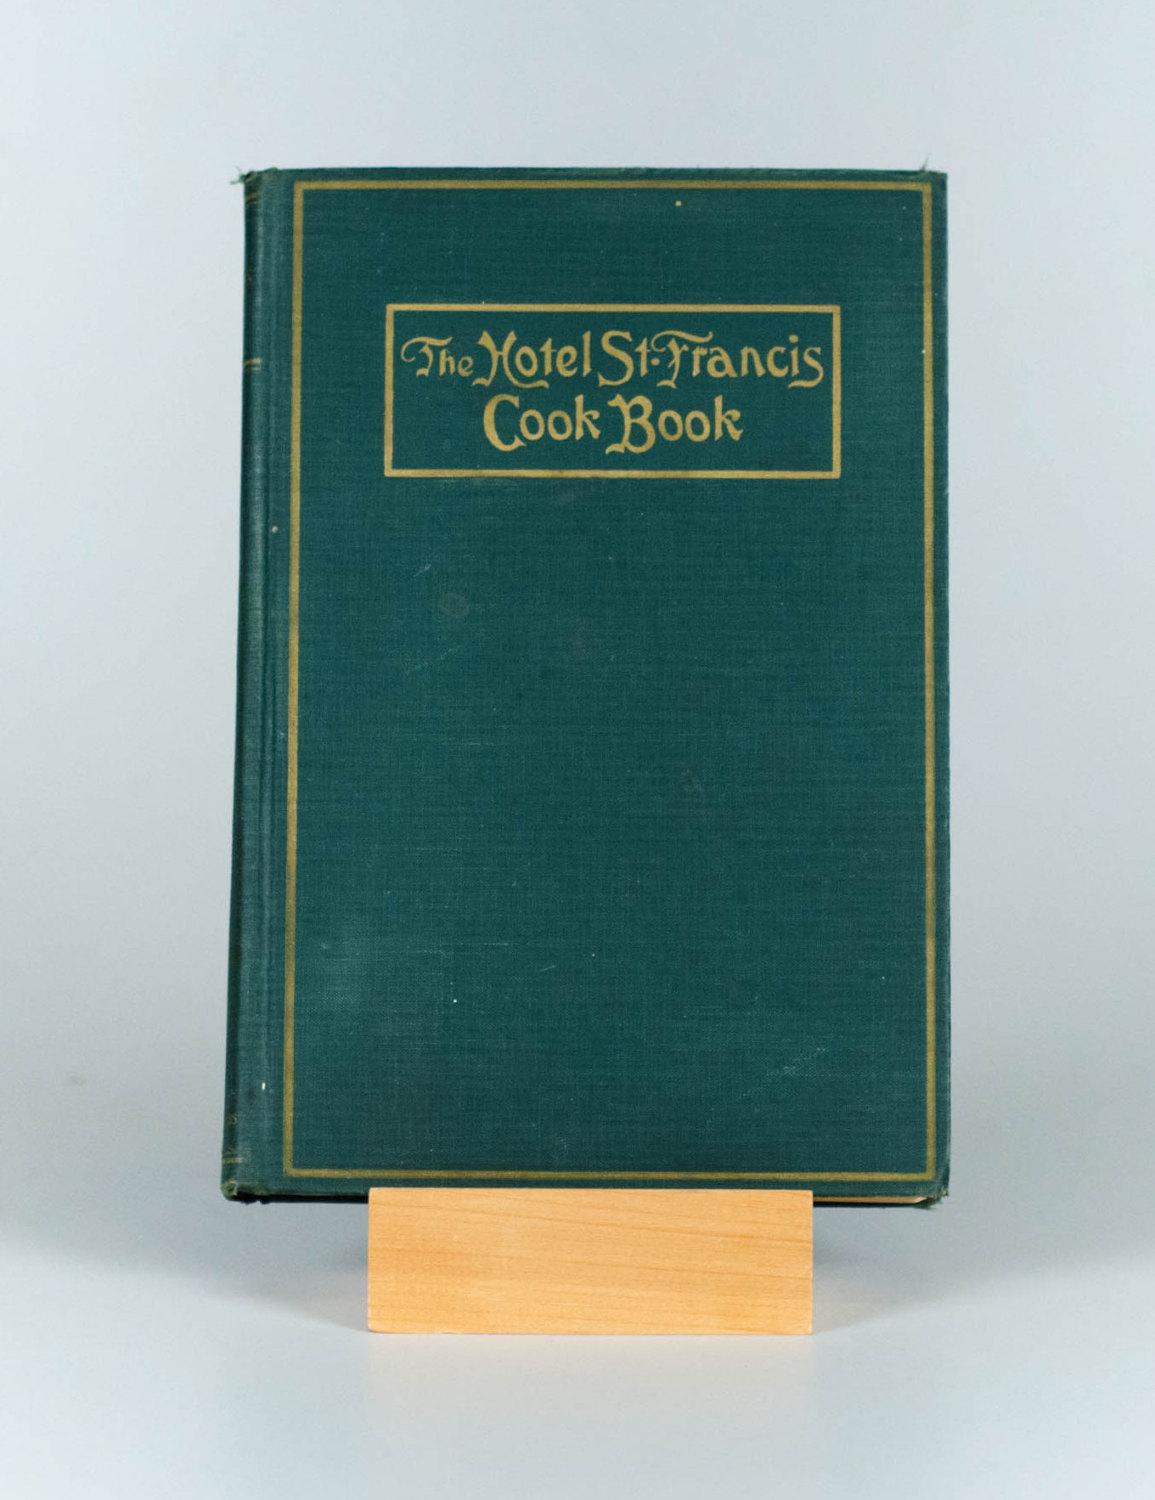 The Hotel ST Francis Cook Book